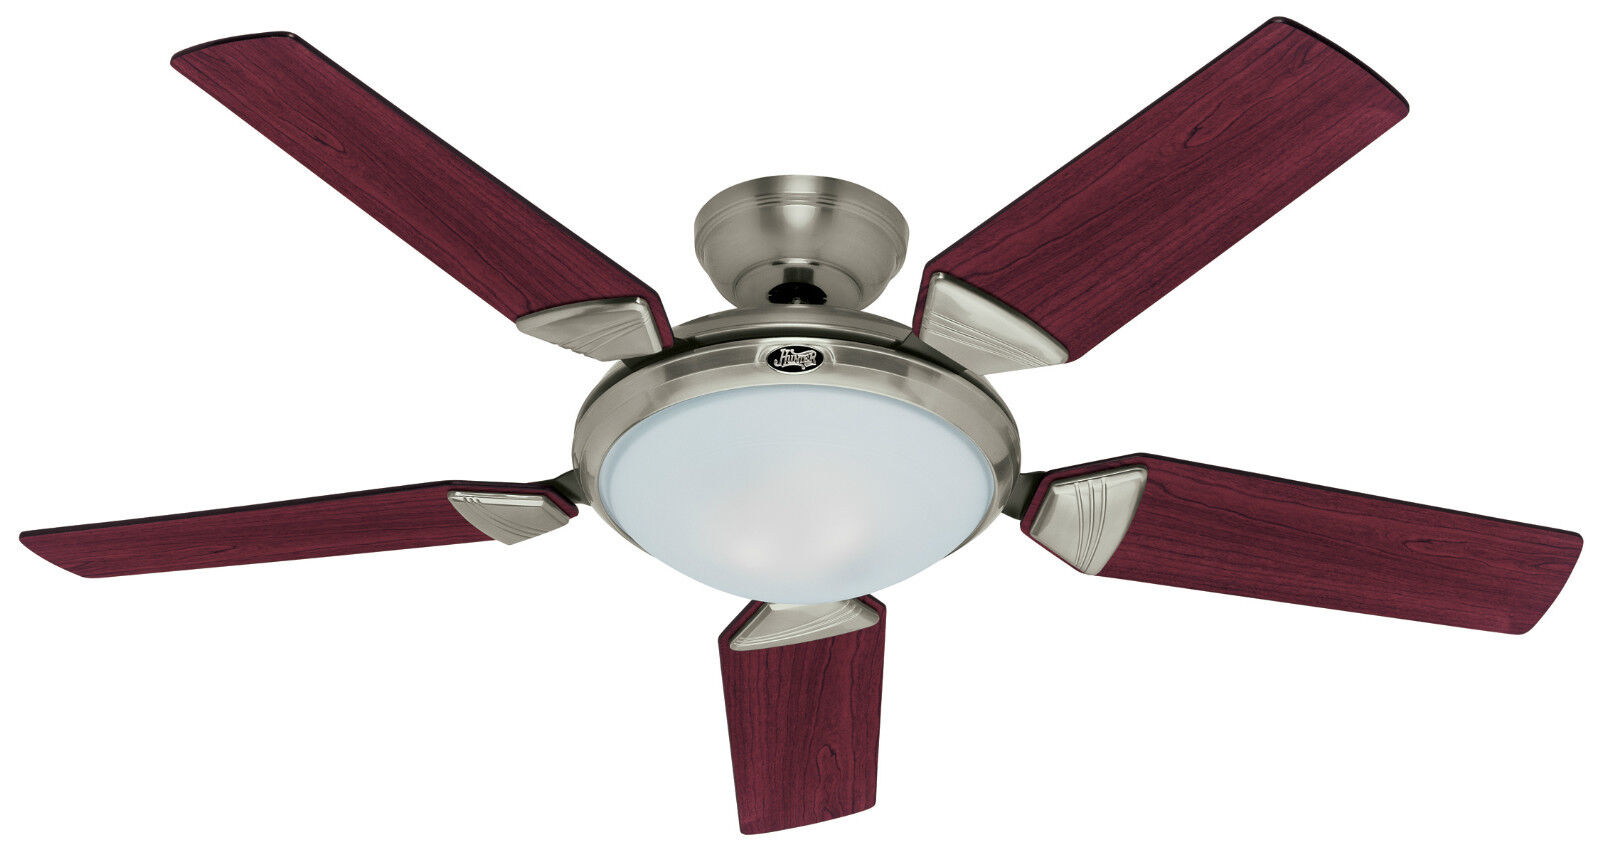 Image Result For Remote Controls For Hunter Ceiling Fans